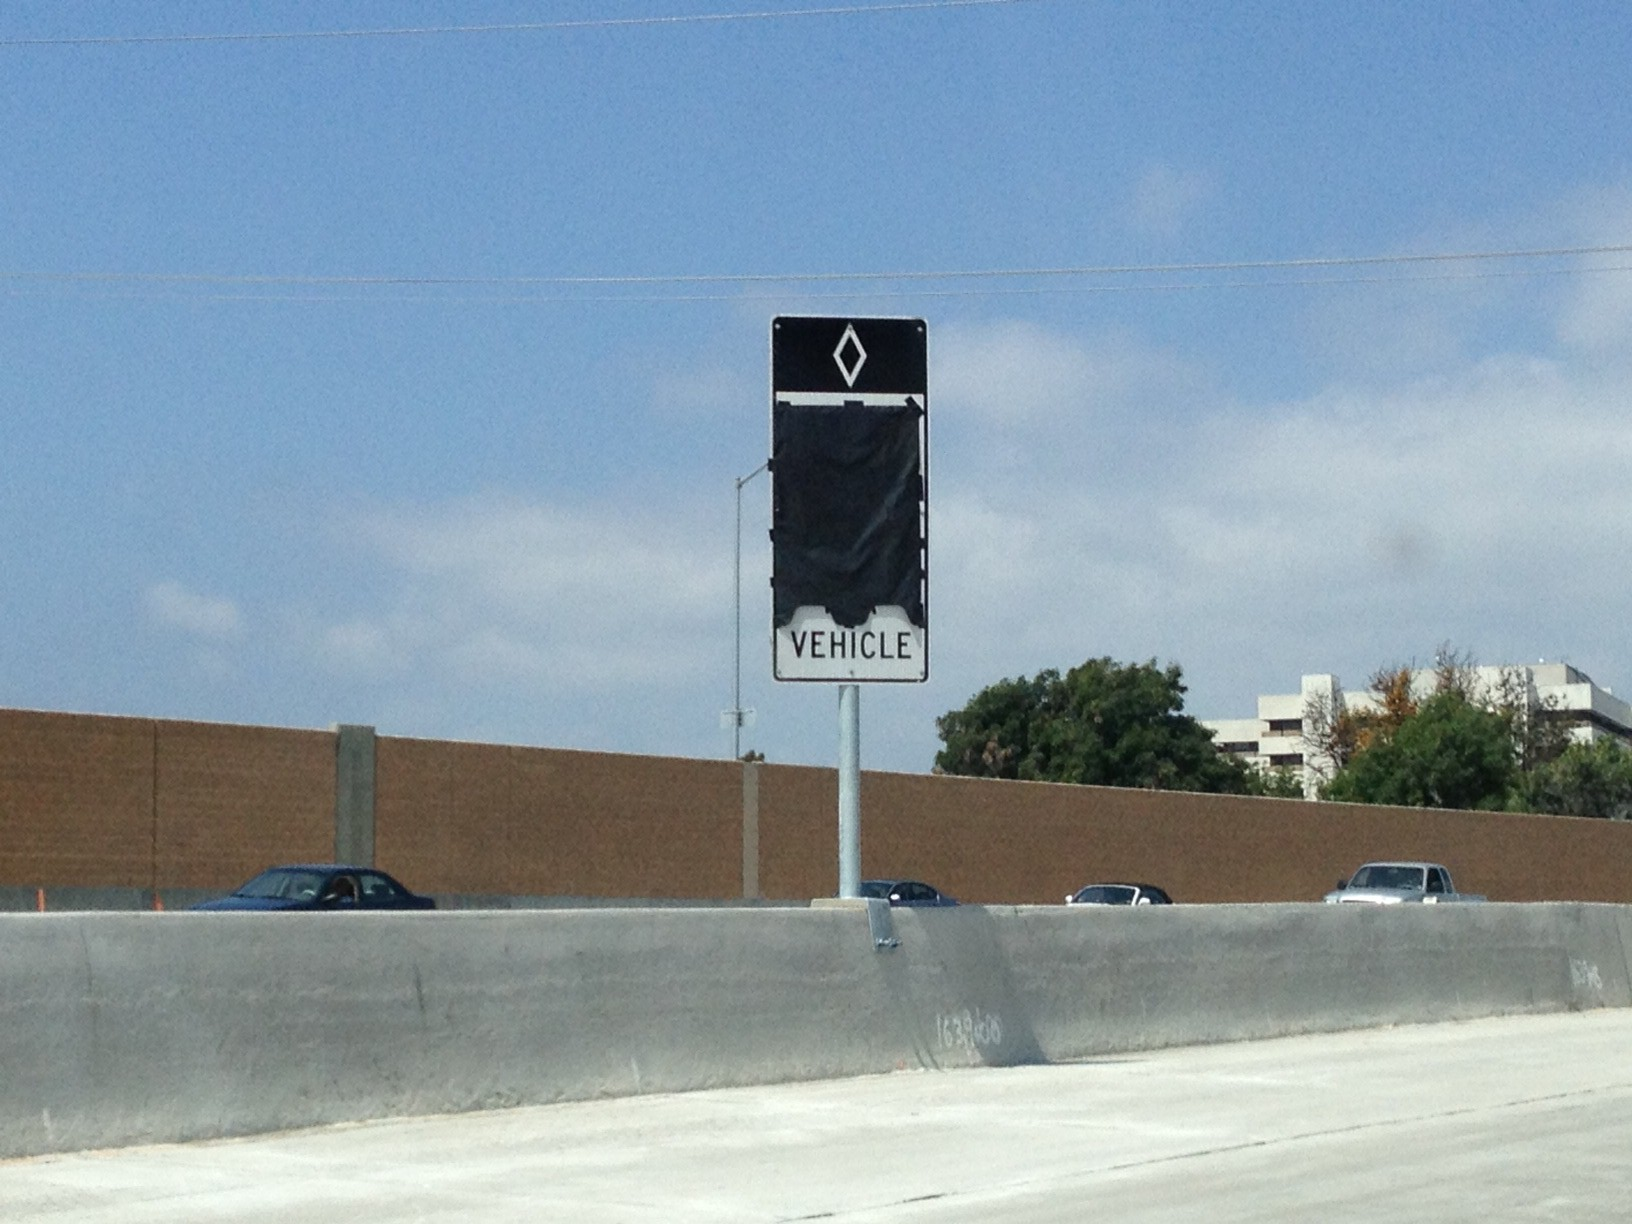 Contractor gets ready to open new carpool lane segment with installation of HOV signage at the freeway median.